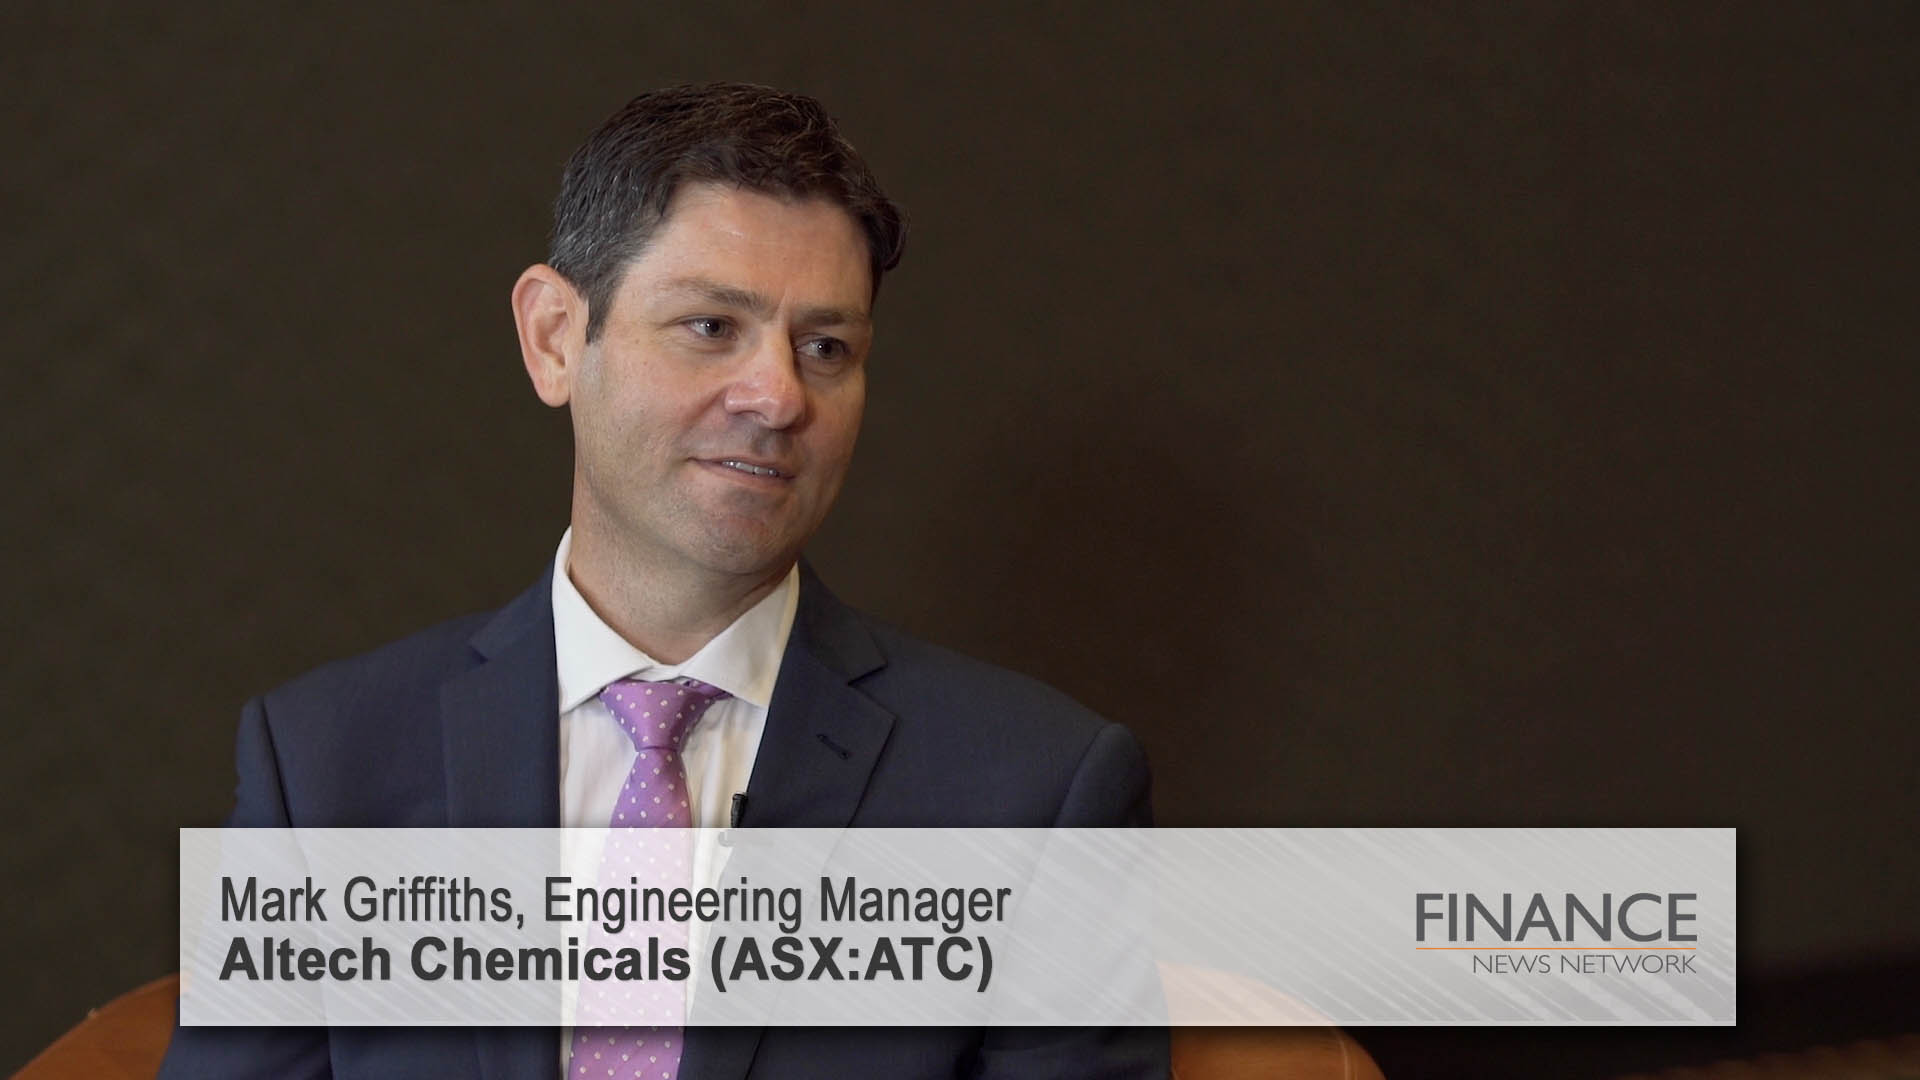 Altech Chemicals (ASX:ATC) HPA project update